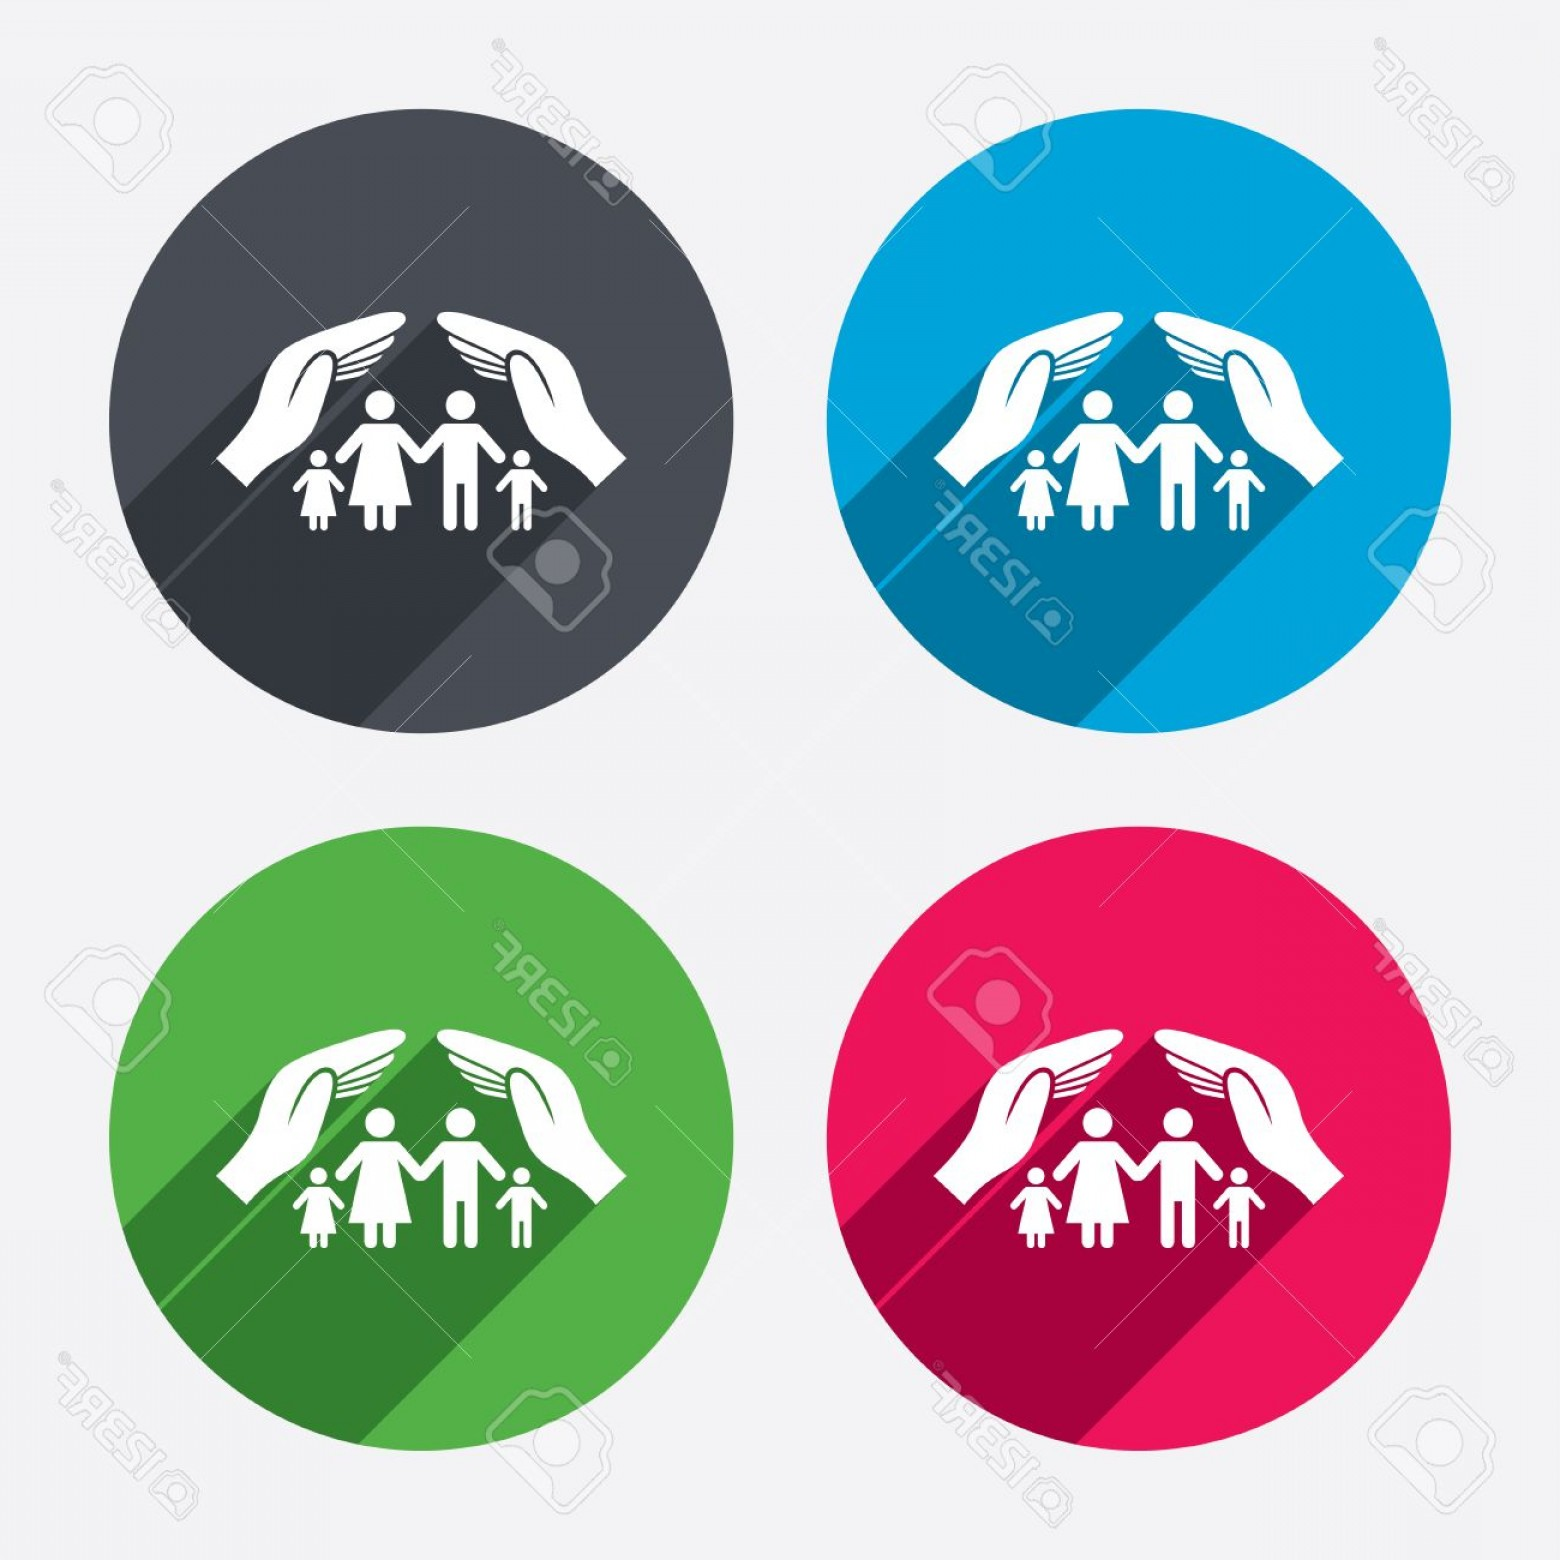 Vector Health Insurance: Photostock Vector Family Life Insurance Sign Icon Hands Protect Human Group Symbol Health Insurance Circle Buttons Wit